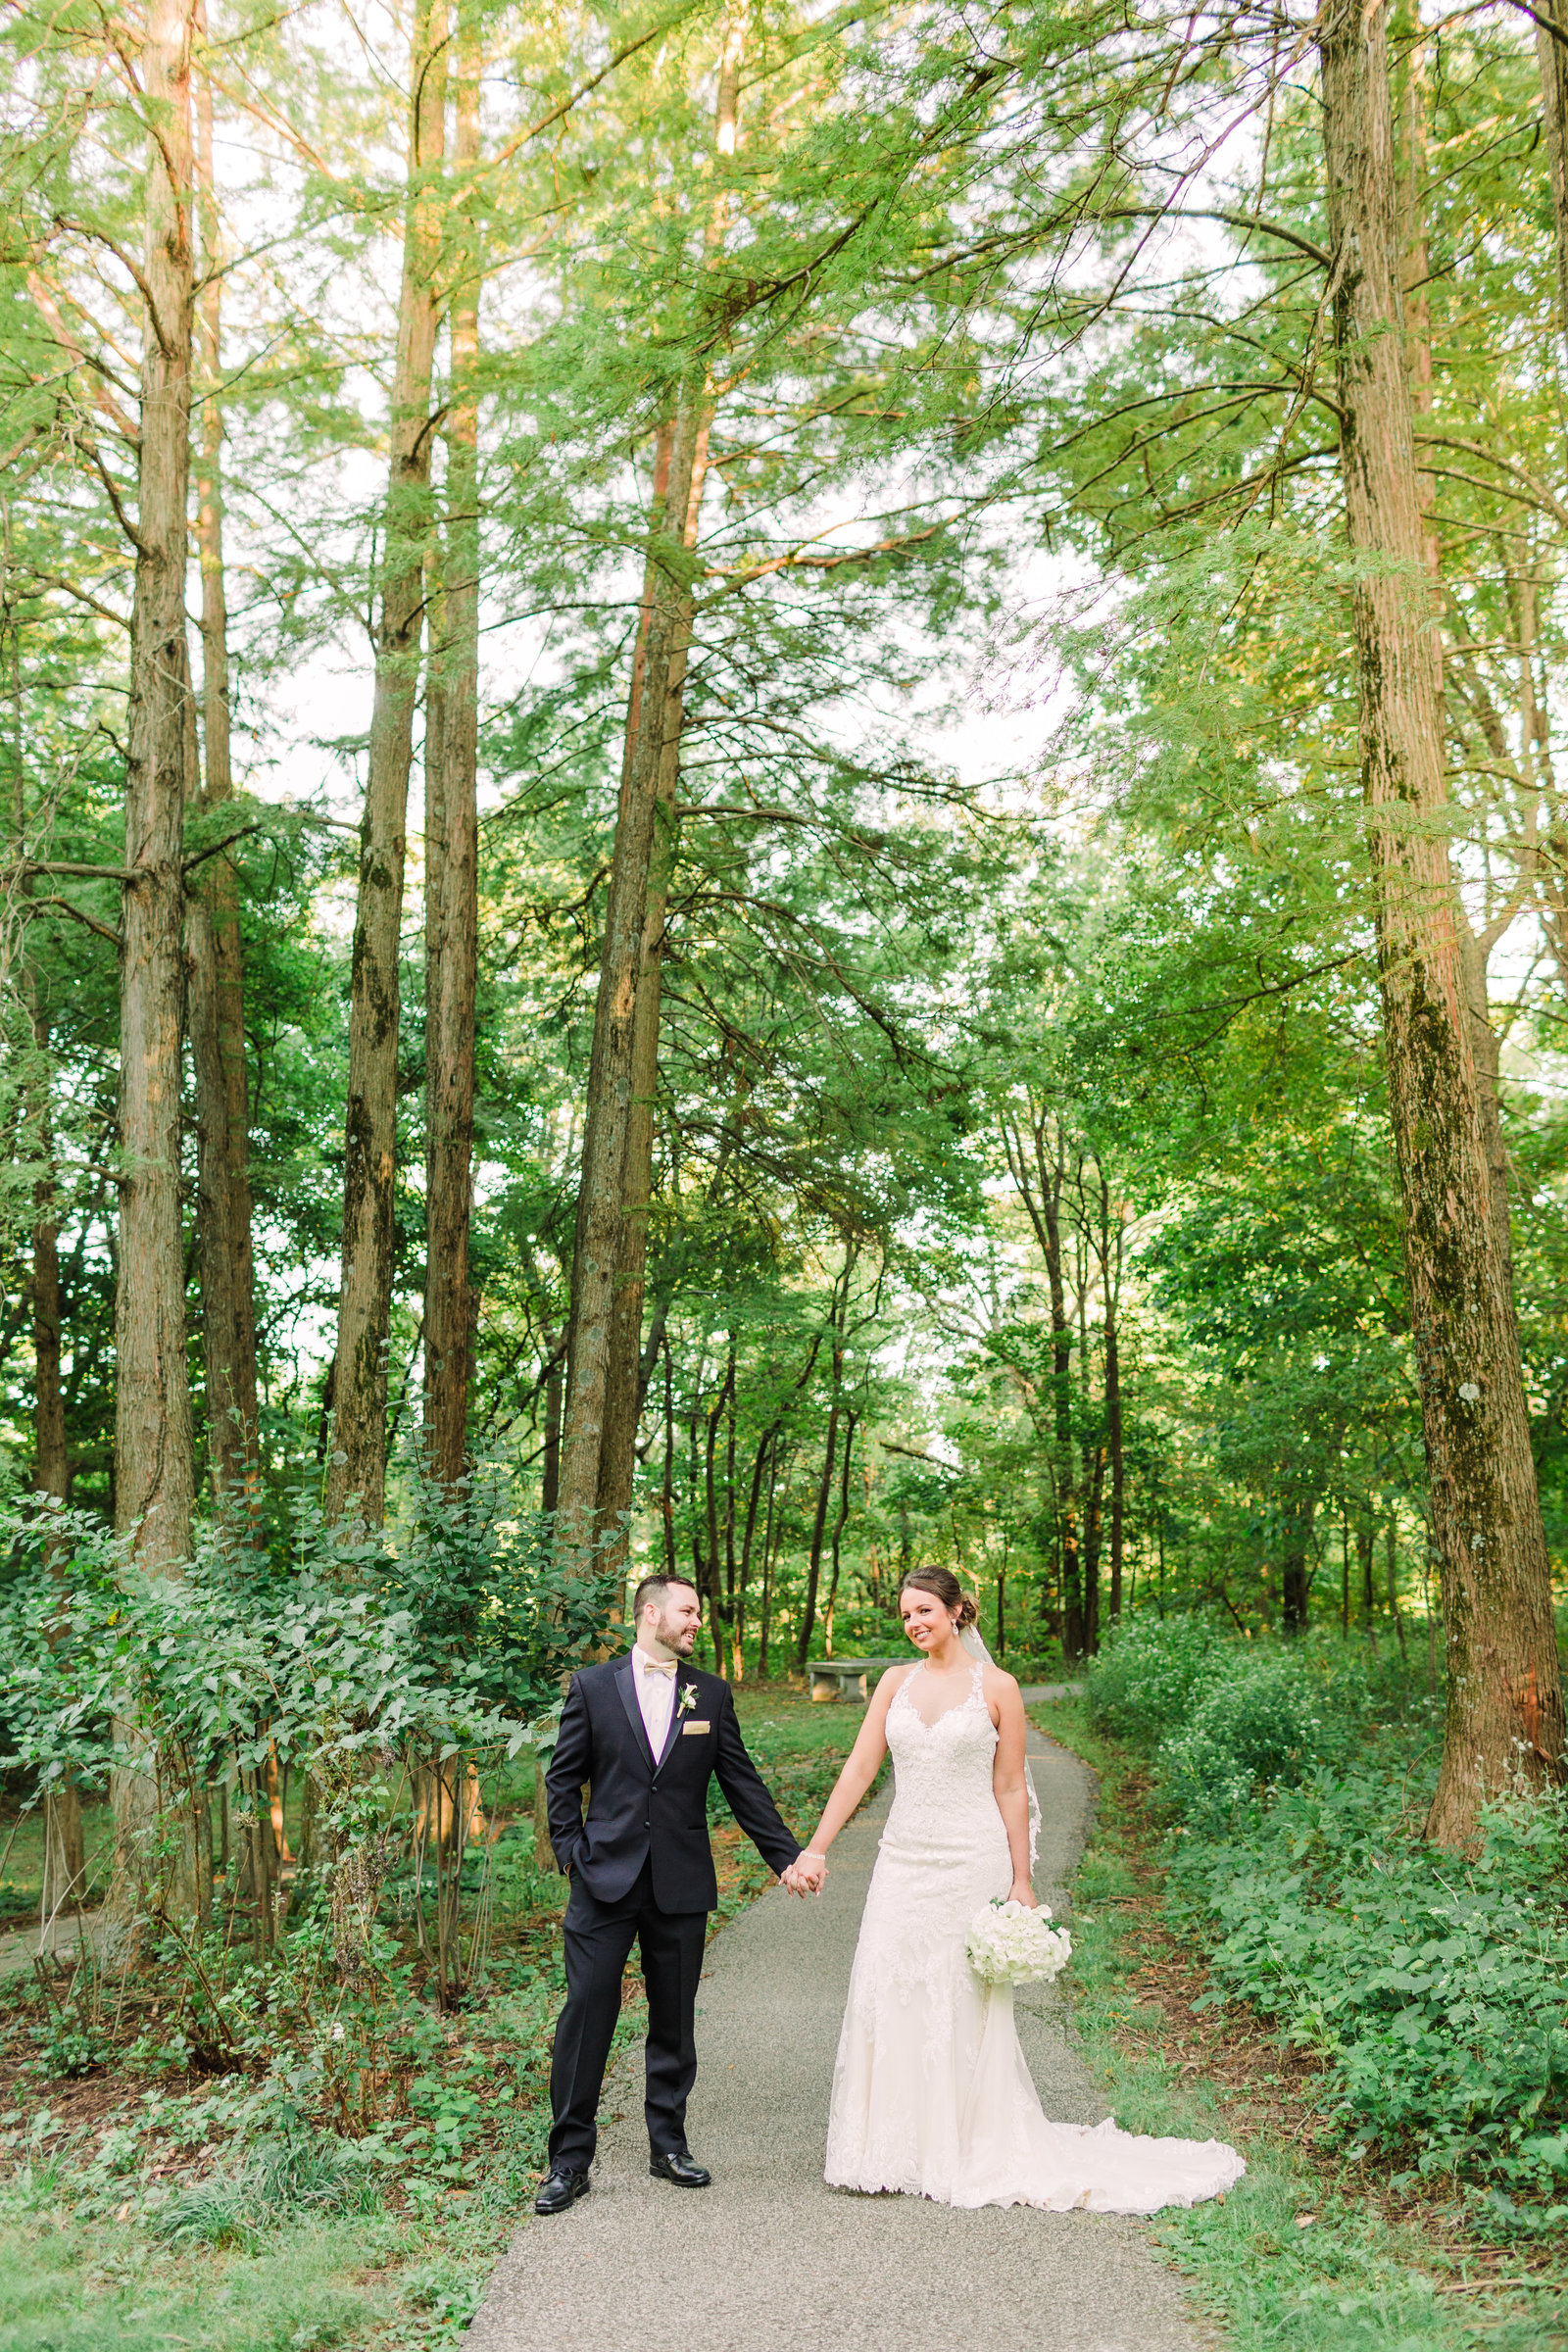 Portrait of Bride and Groom, Courtney and Dan, on a path surrounded by trees at the Gardens of SIUe by Jackelynn Noel Photography